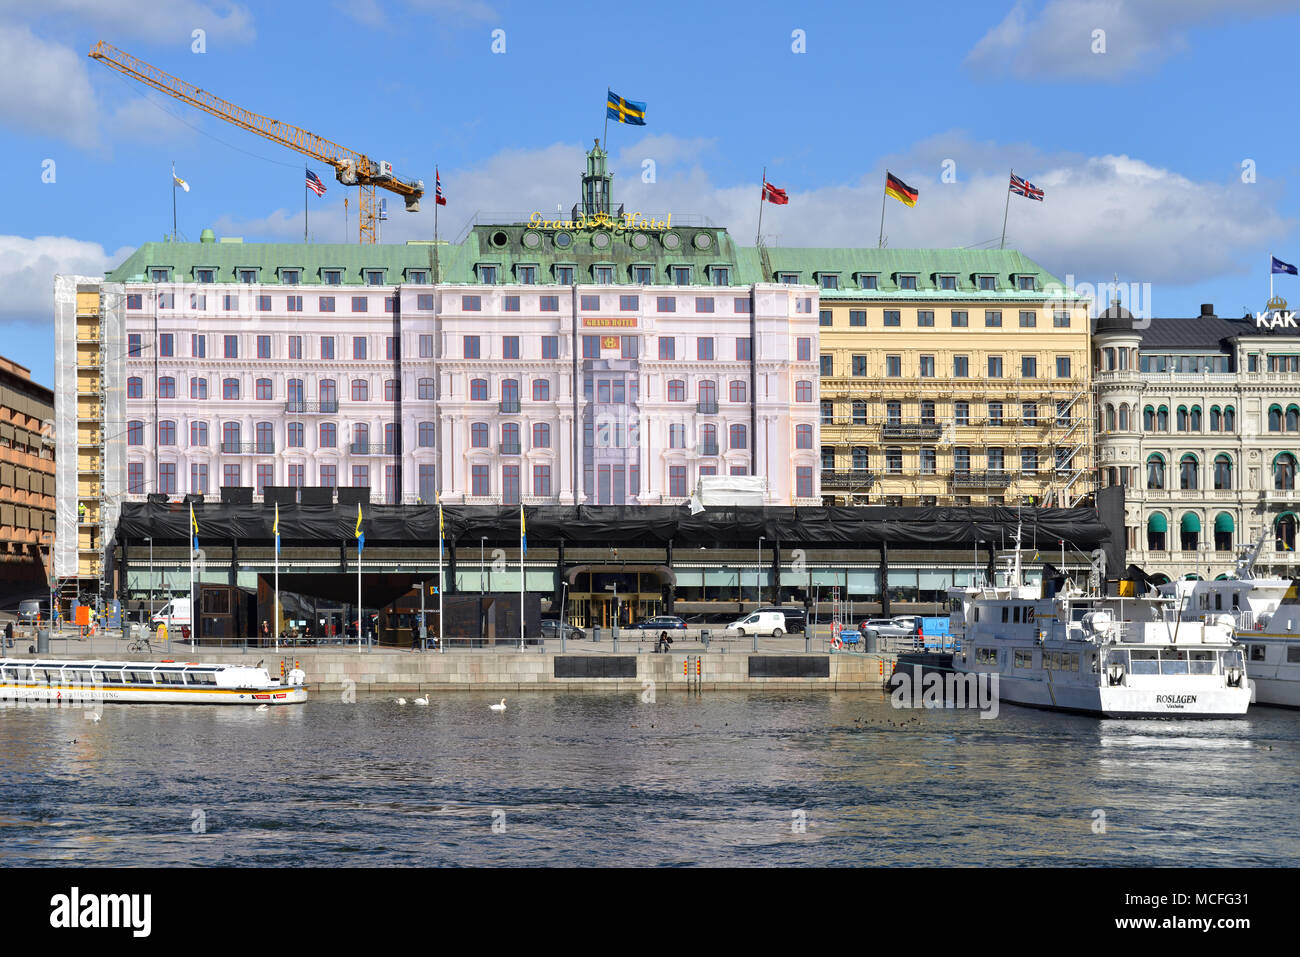 Grand hotel. Reconstruction of building - Stock Image